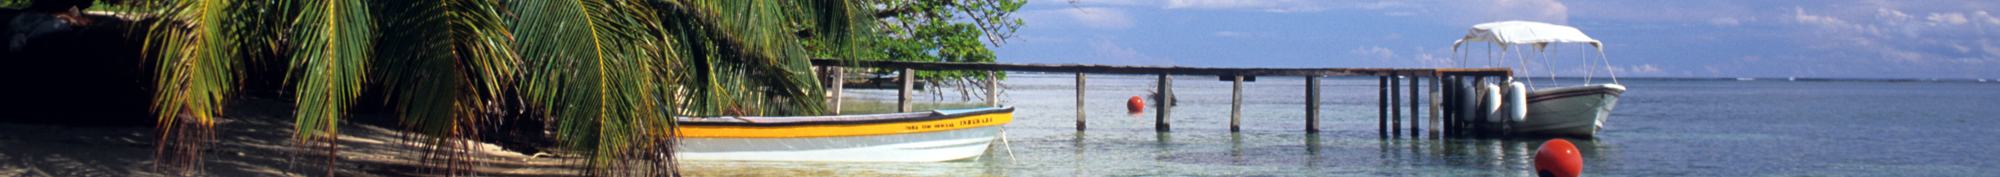 bocas del toro jewish singles A getaway to bocas del toro- experience the laid back caribbean atmosphere at bocaspart of an archipelago with aqua blue waters, palm-lined white-sand beaches and dense rainforest junglewith surprising variety of restaurants and nightlife spots.